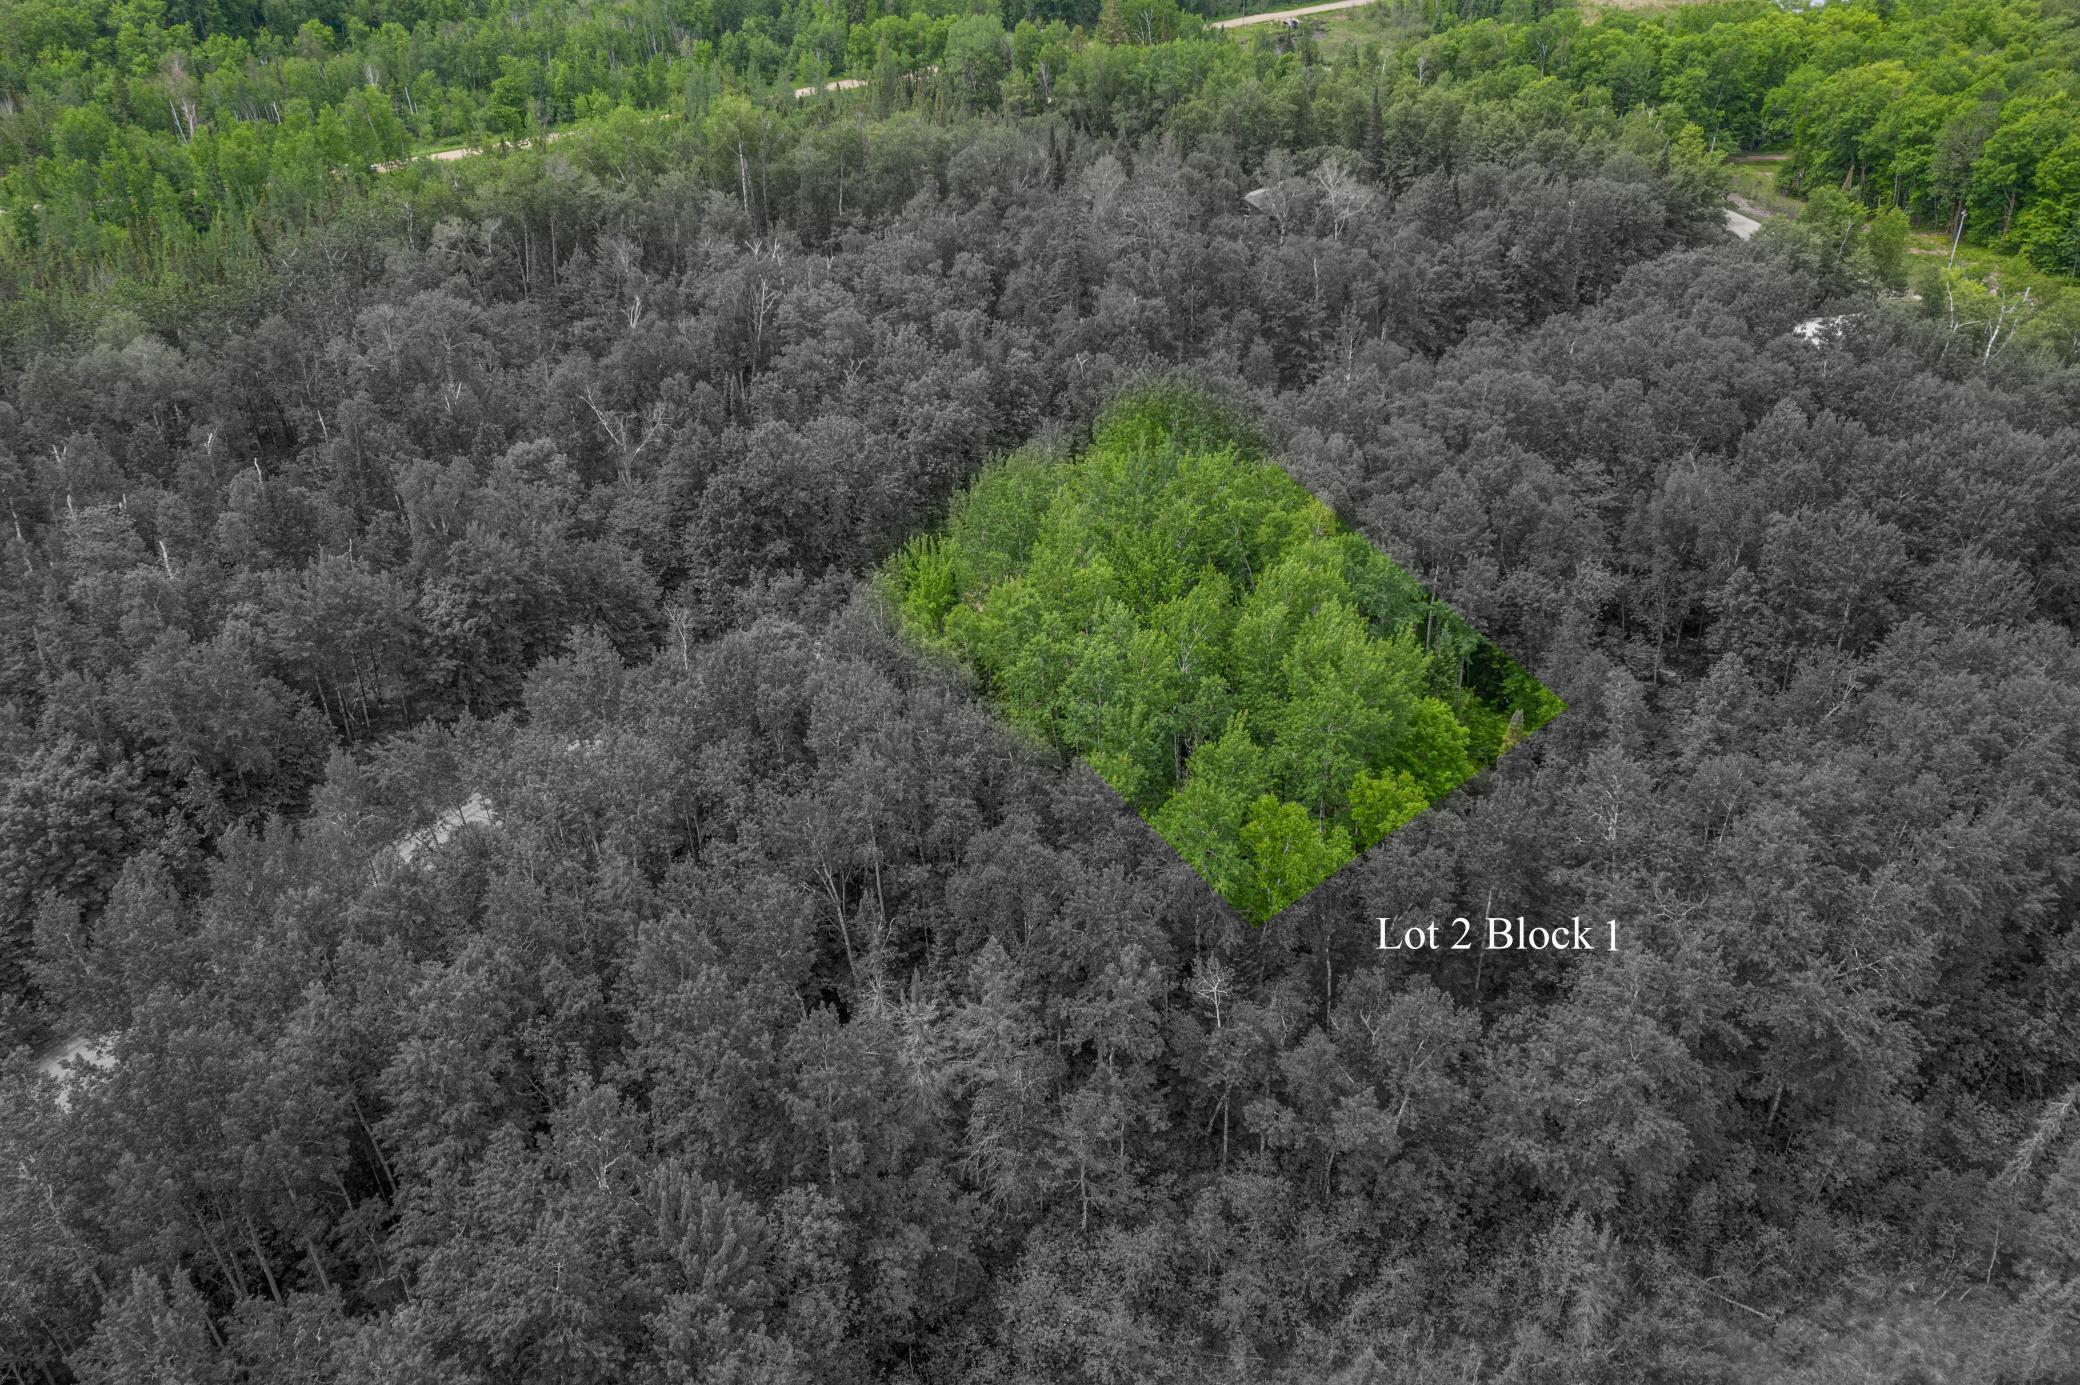 The Land is a plat with 15 available lots in a prime location just north of Deer, Moose and Little Moose lakes with several of the lots backing onto the Chippewa National Forest. The lots all have access to underground utilities including electric and Paul Bunyan high speed internet. This lot offers direct access to miles of forest, trails, the Suomi Recreation Area. Build your new home, cabin or use as a recreation lot for year round outdoor adventure.